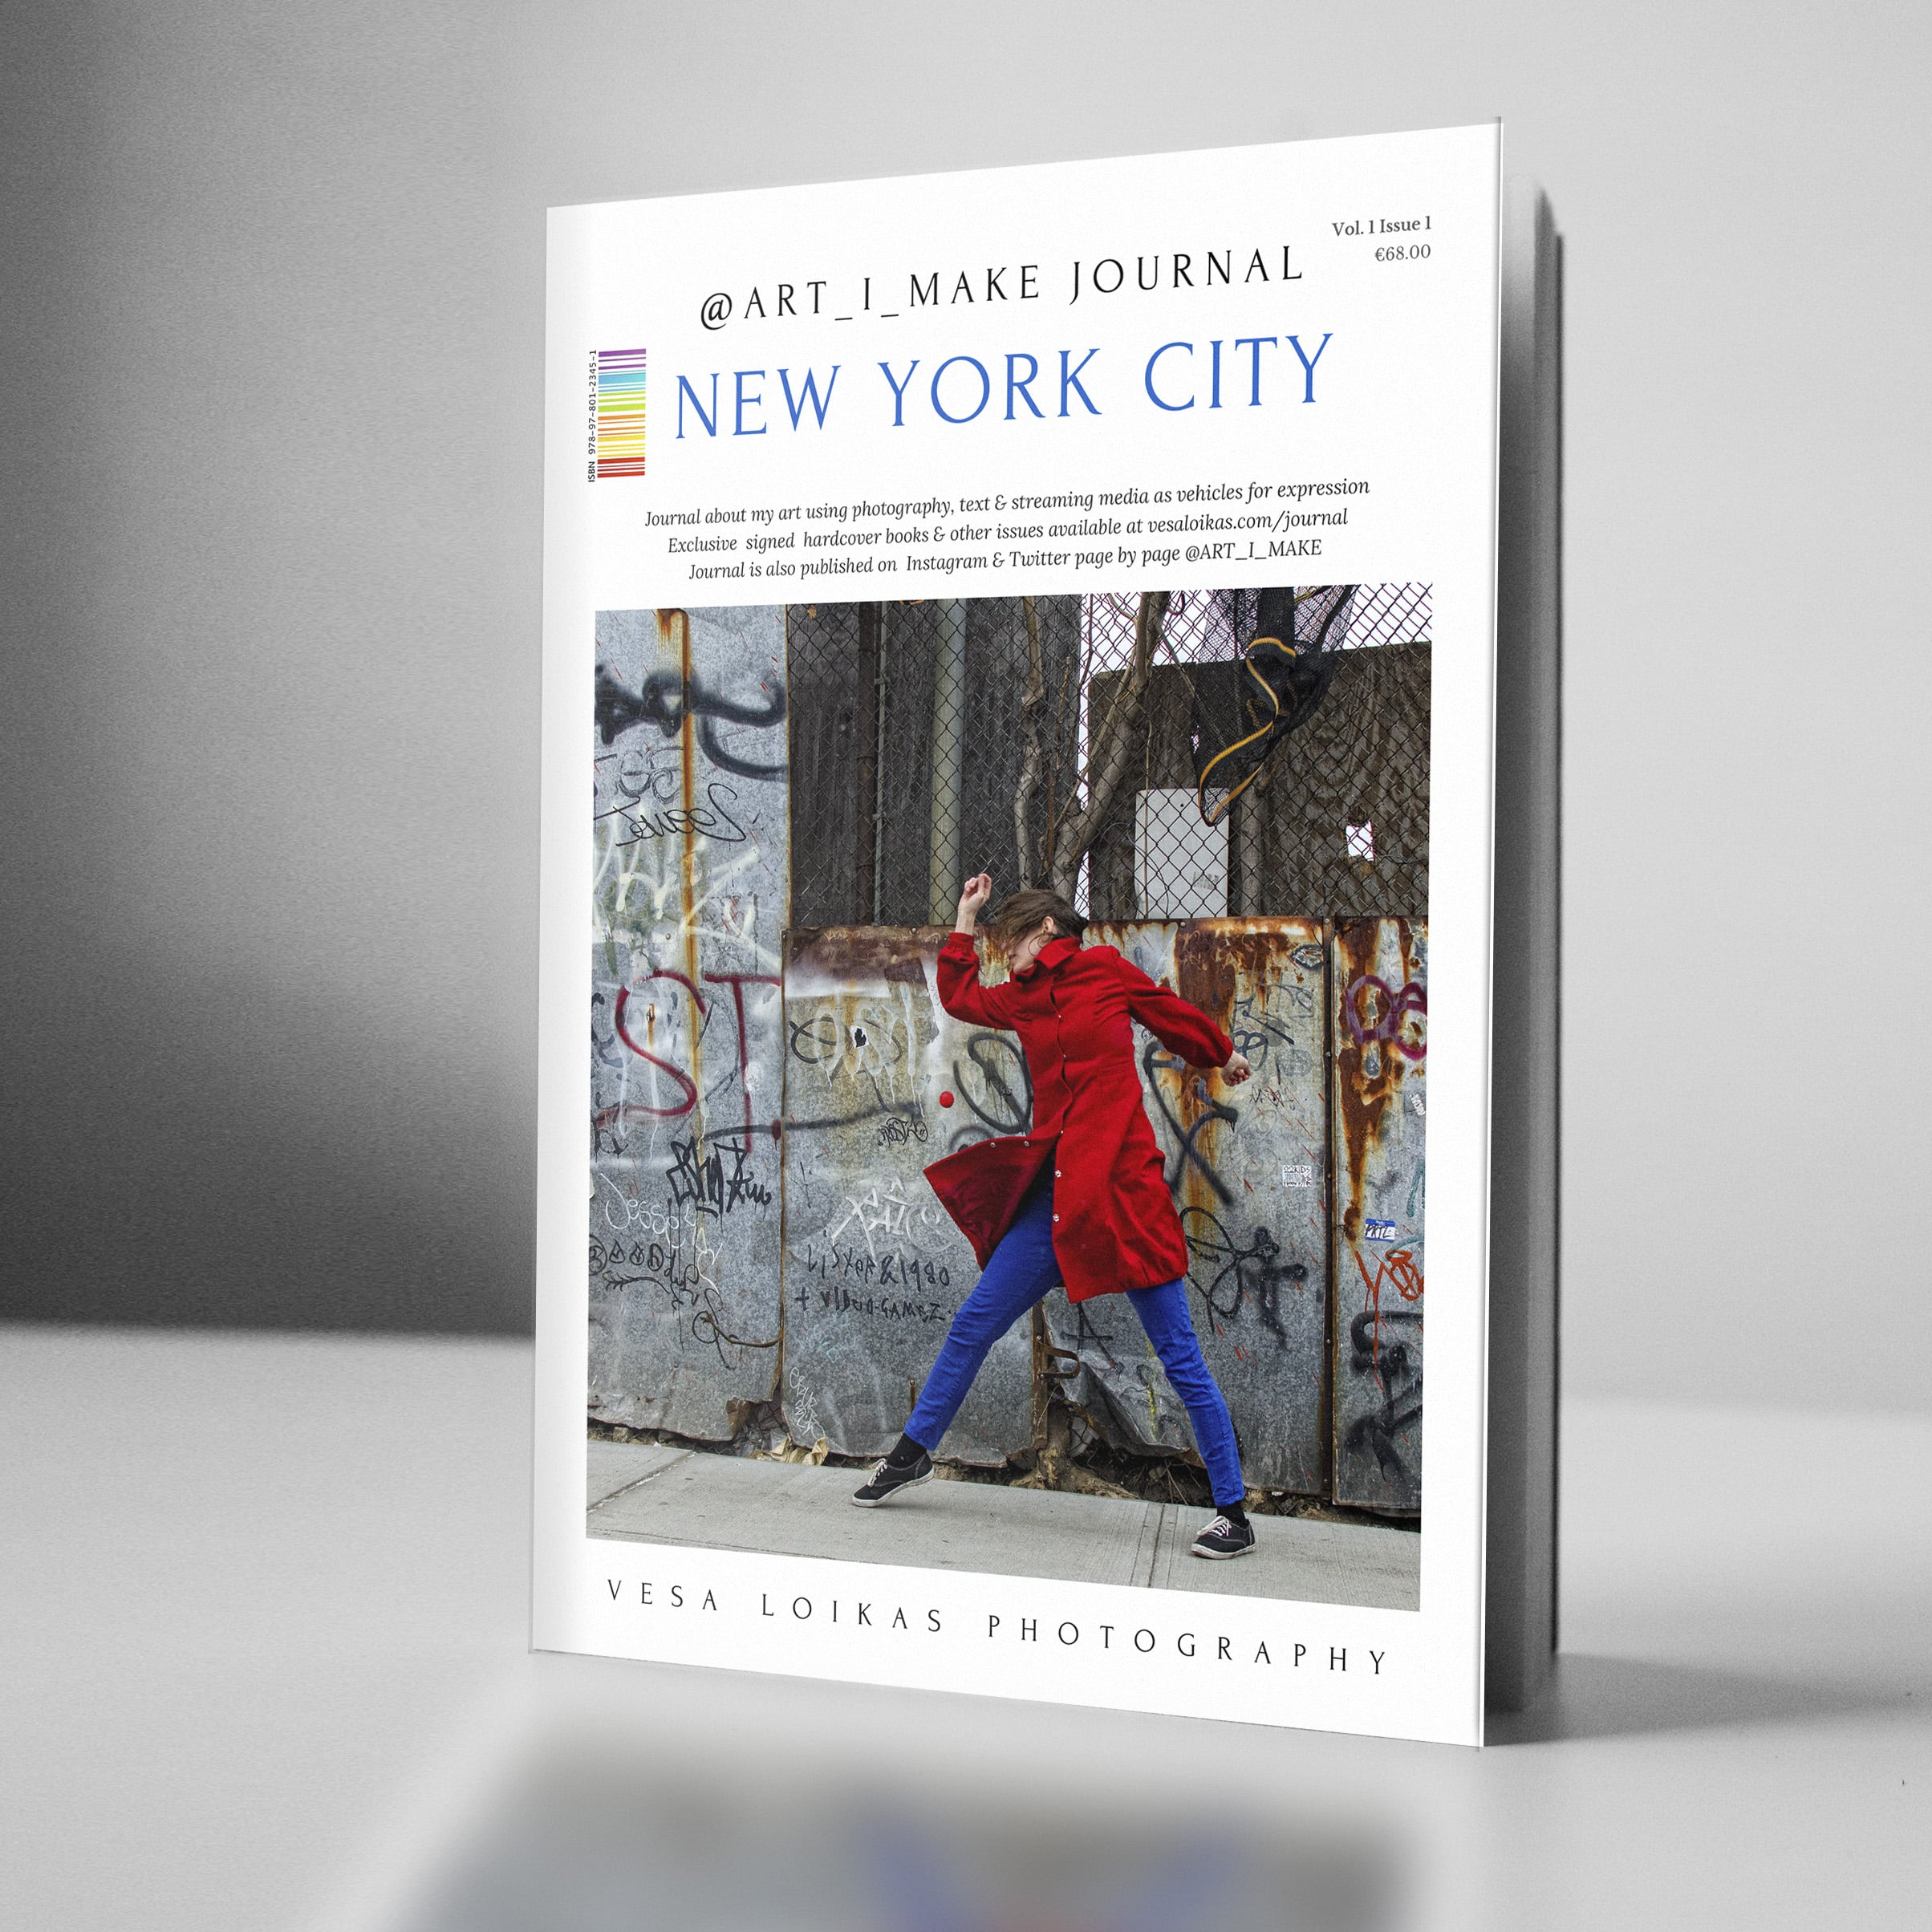 PRE-ORDER the hardcover version HERE